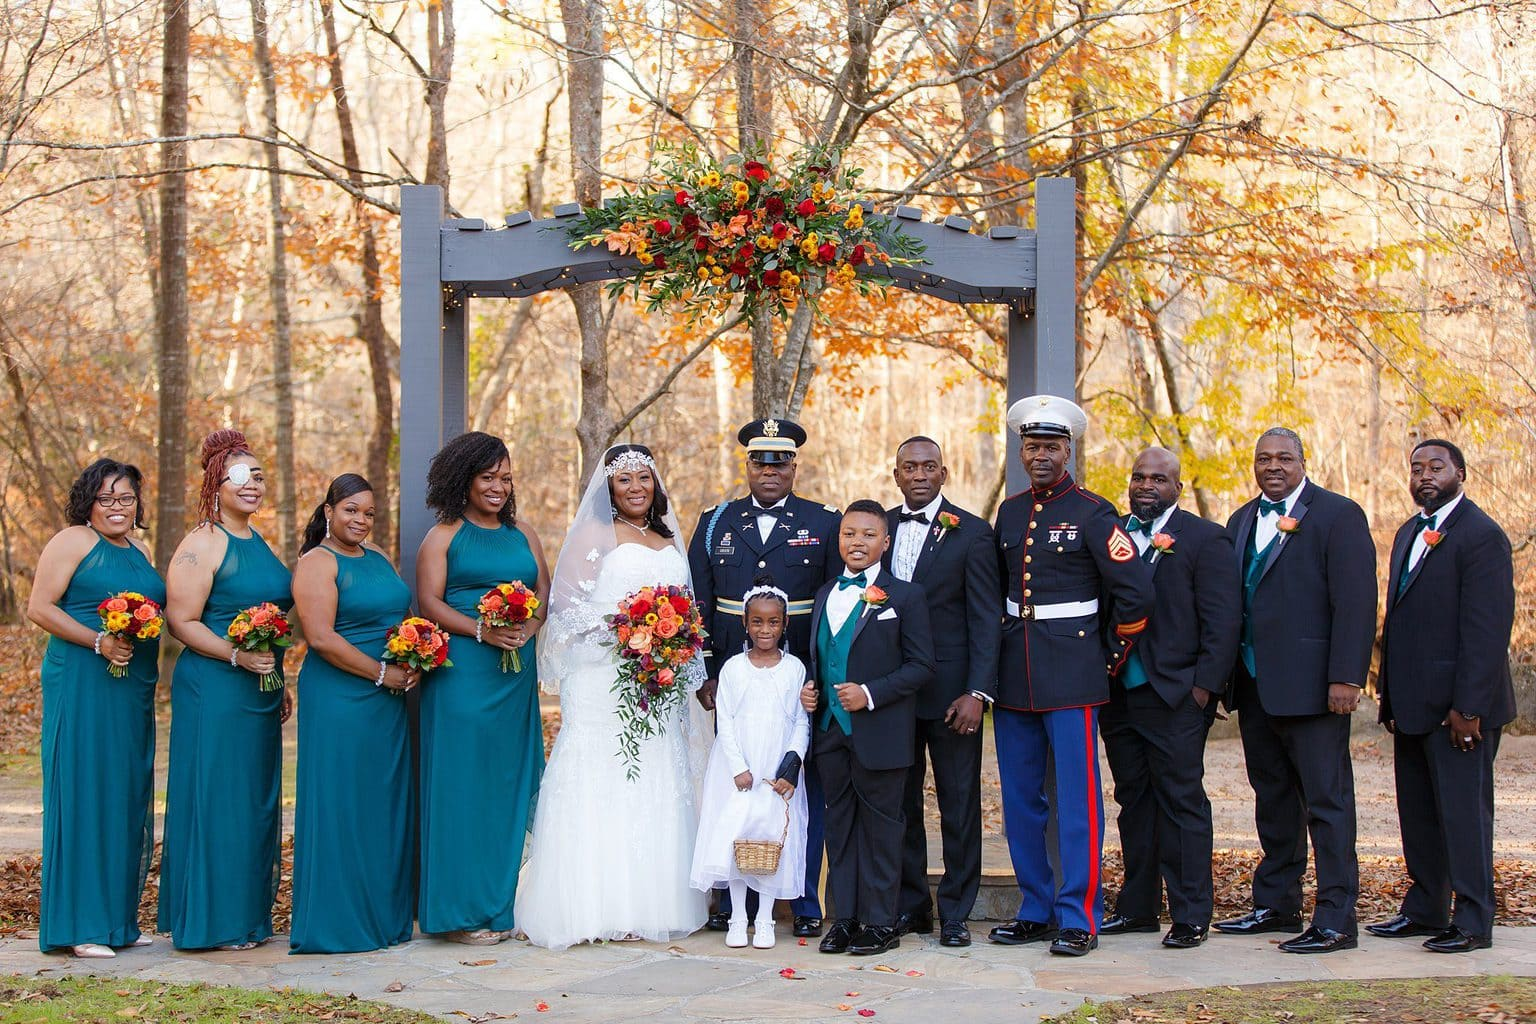 Teal Wedding party with Military best man and eye patch